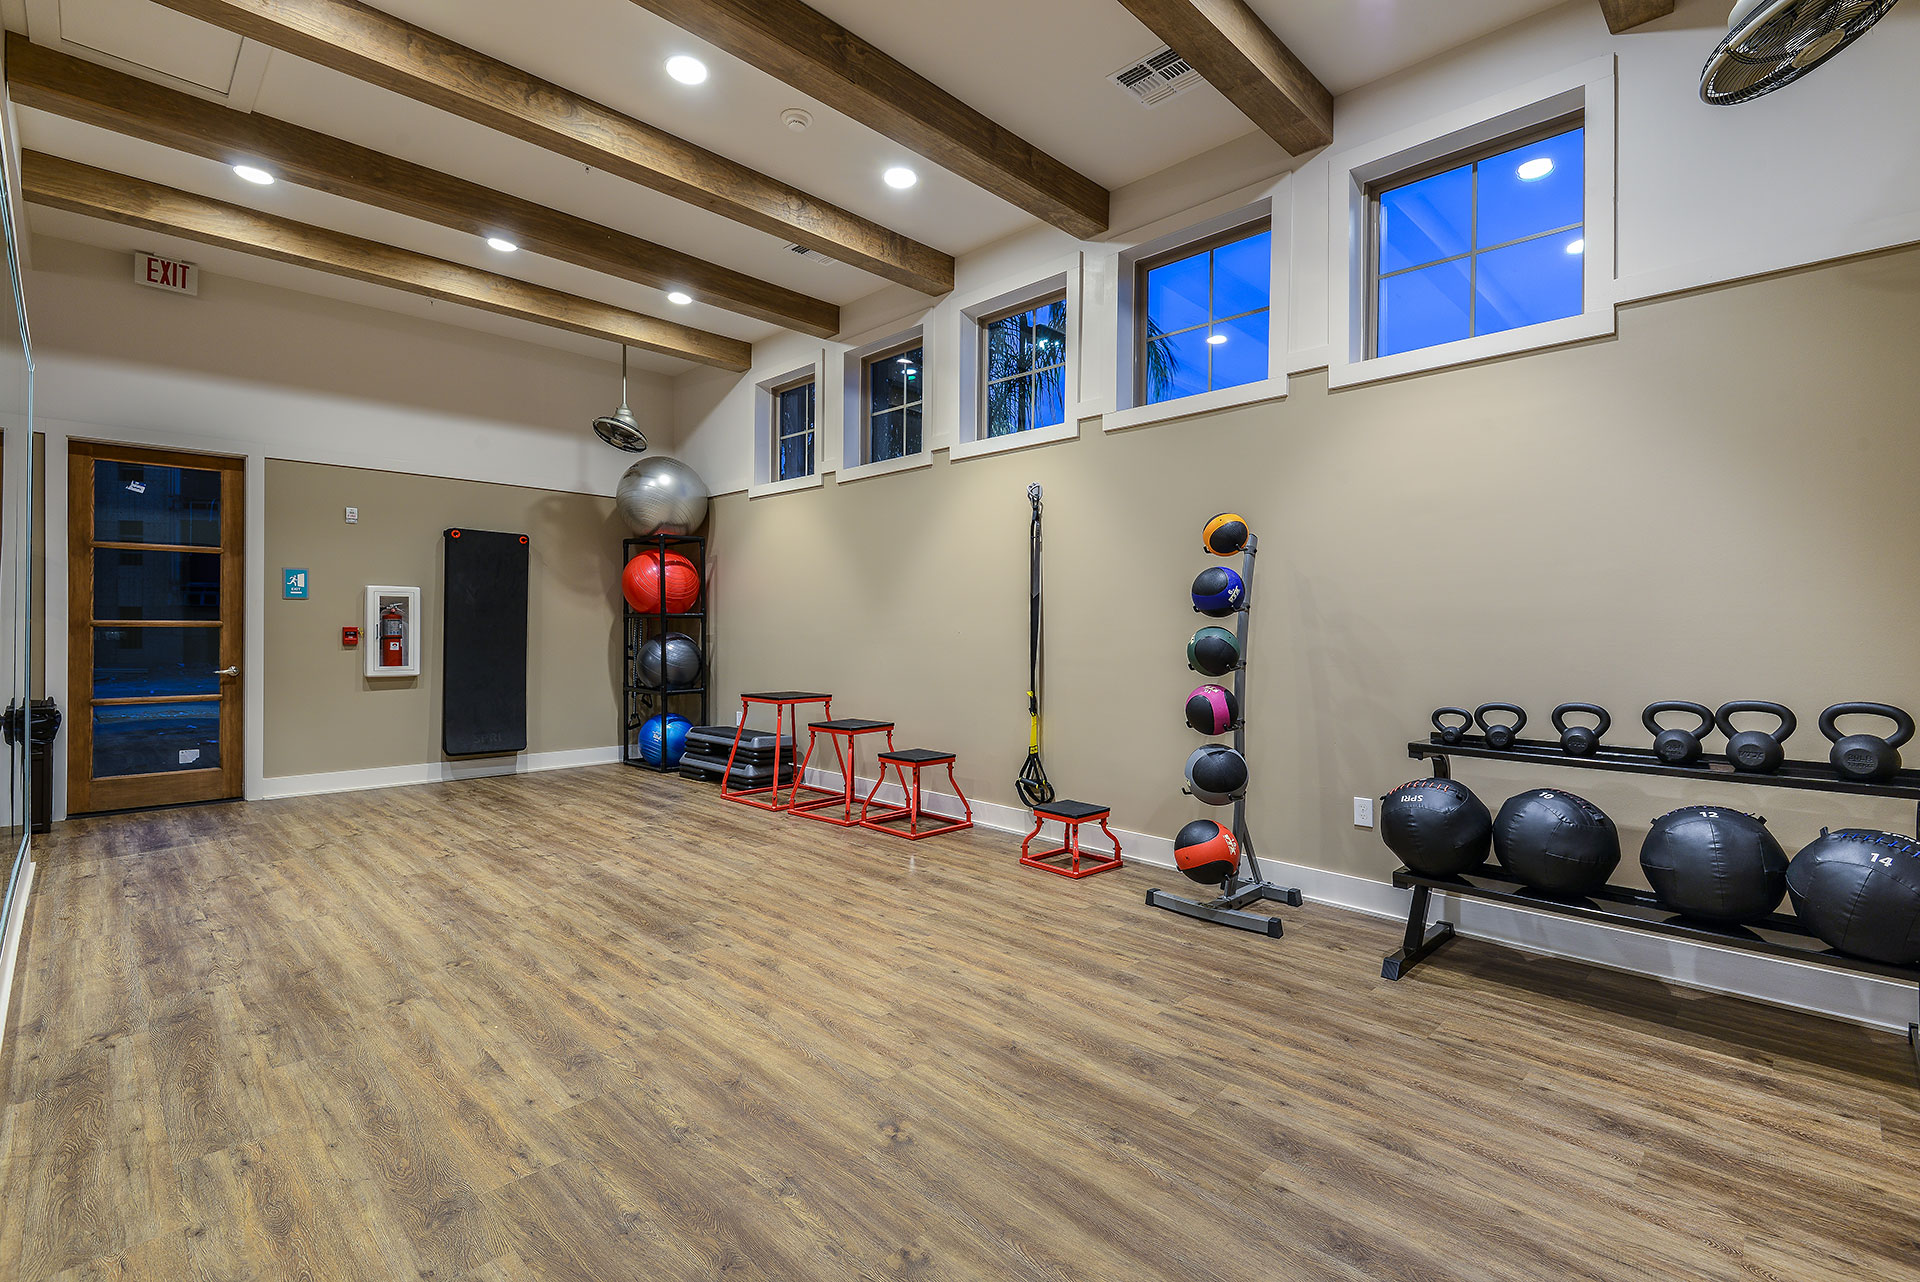 Workout room with exercise balls and wood floors